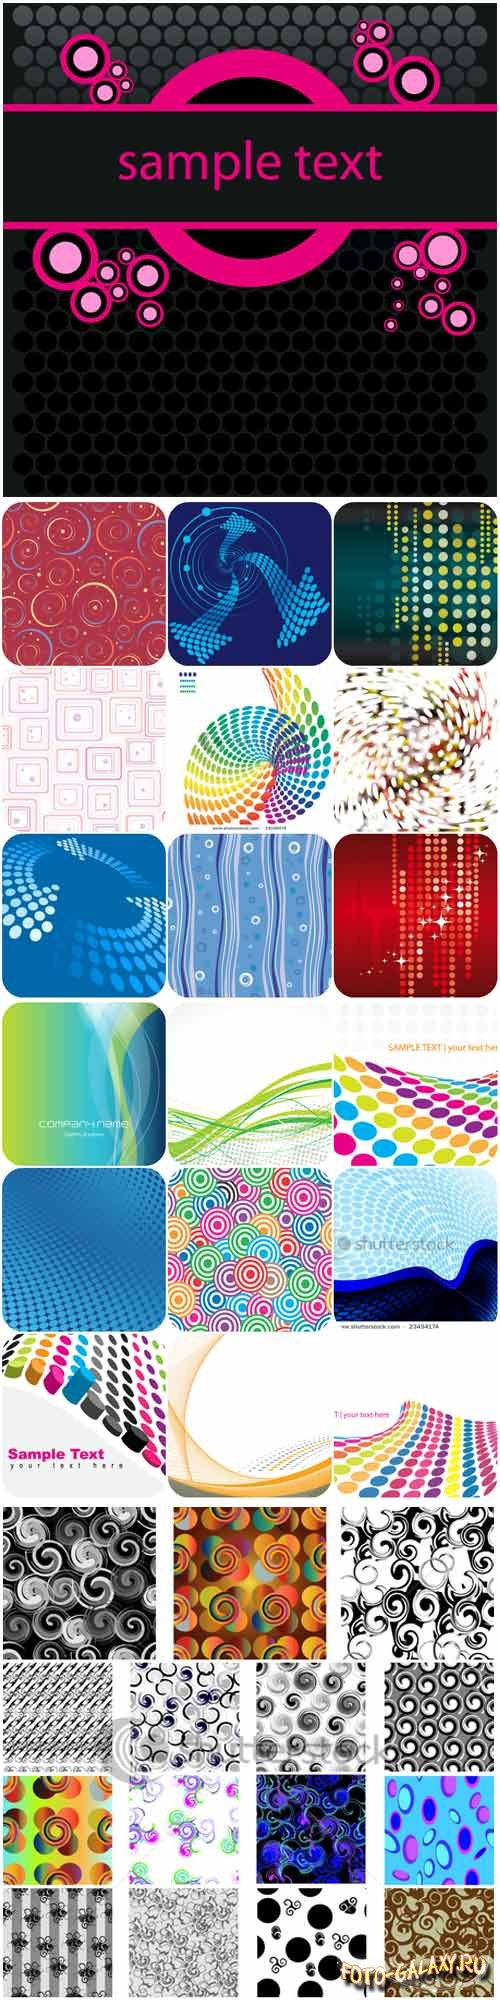 Abstract patterns backgrounds stock vector - 2